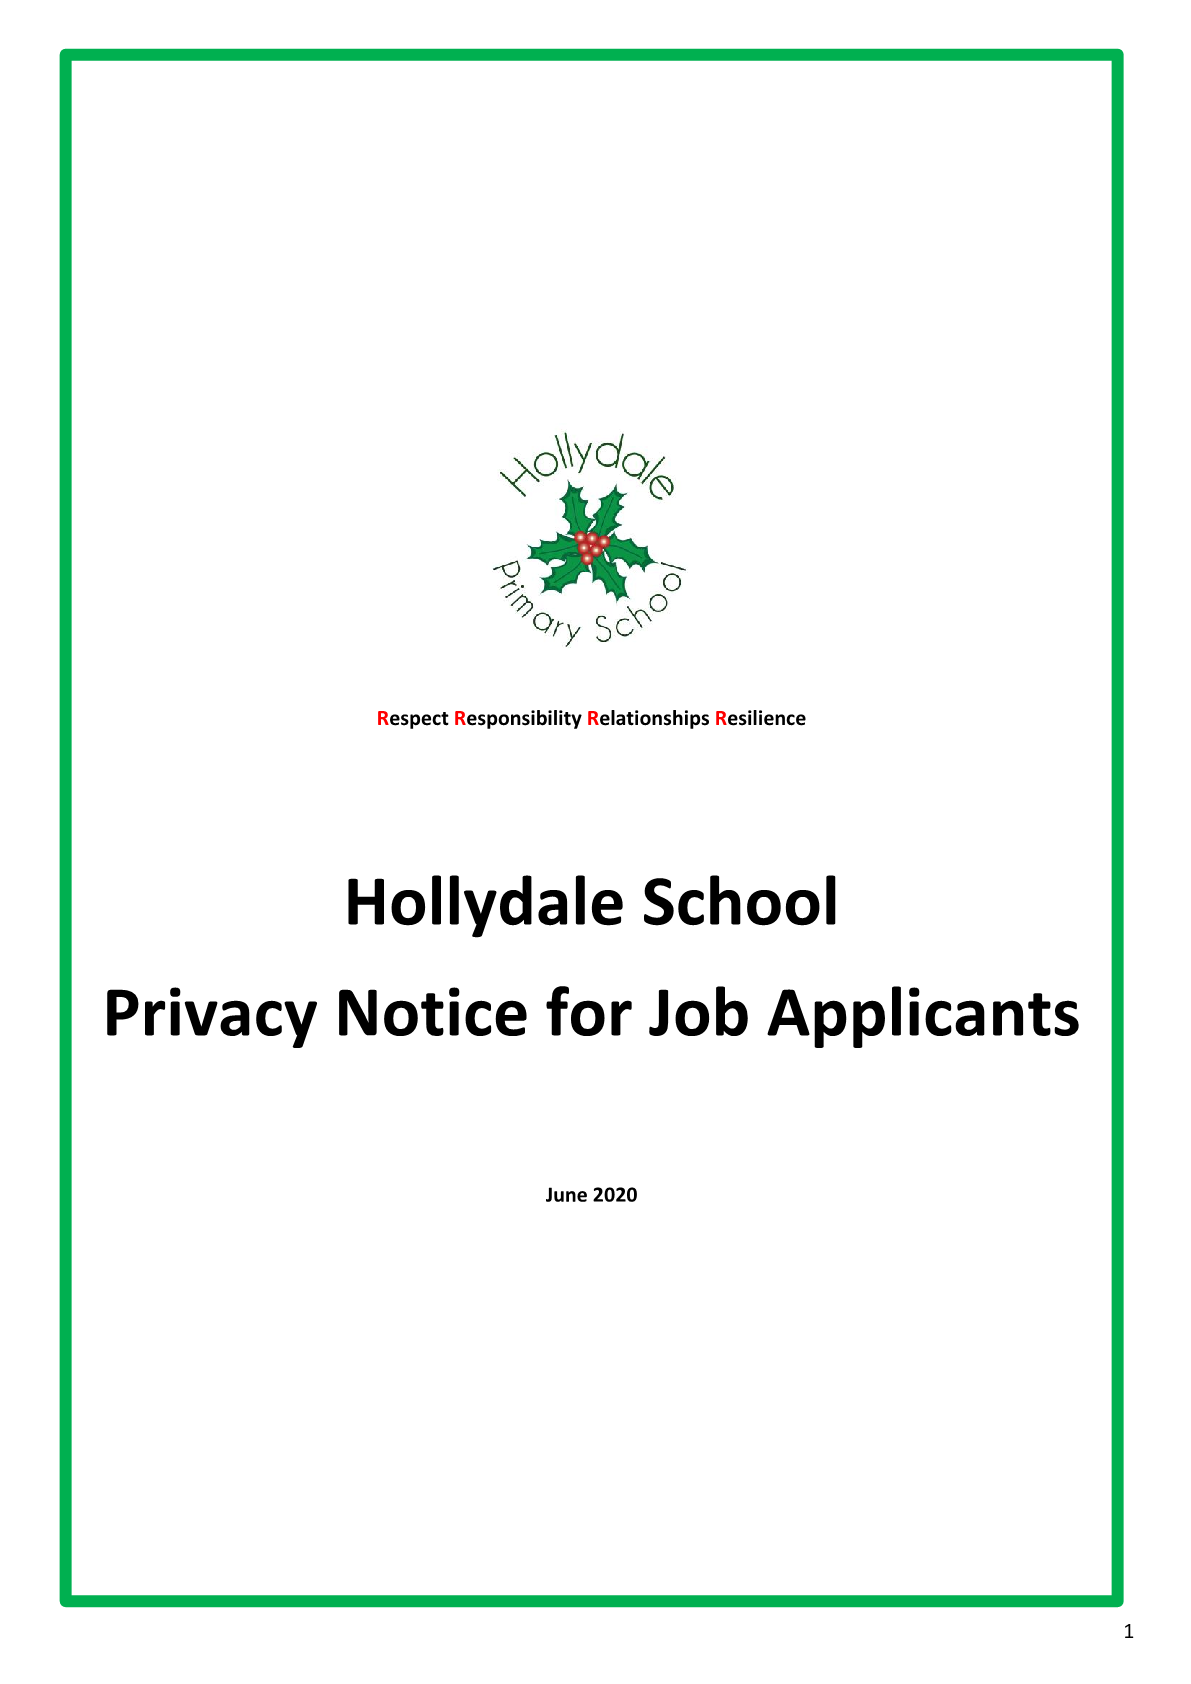 Privacy Notice for Job Applicants